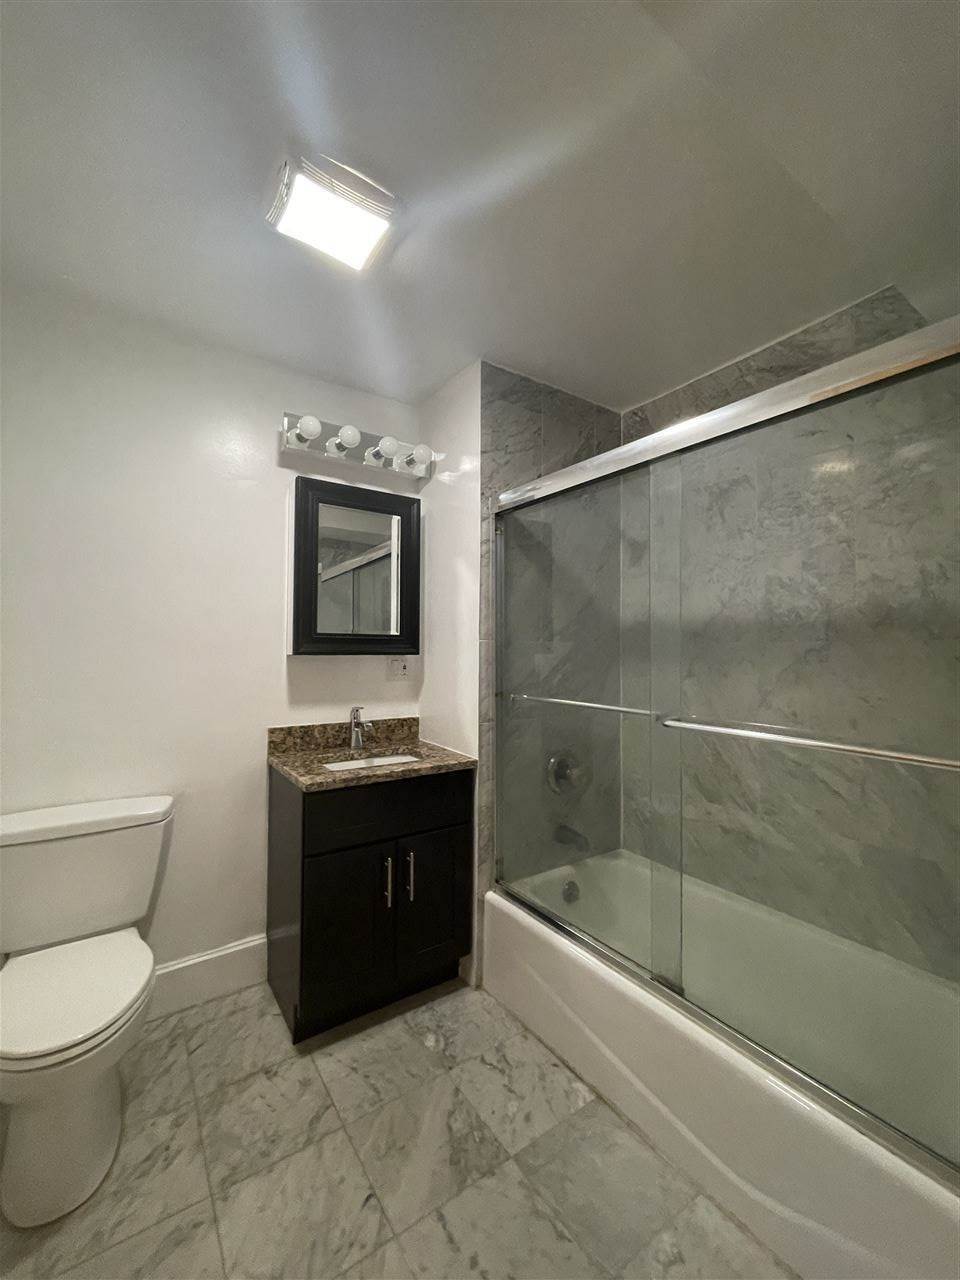 10. Single Family Home for Rent at 204 CHRISTOPHER COLUMBUS DRIVE #1 Jersey City, New Jersey, 07302 United States